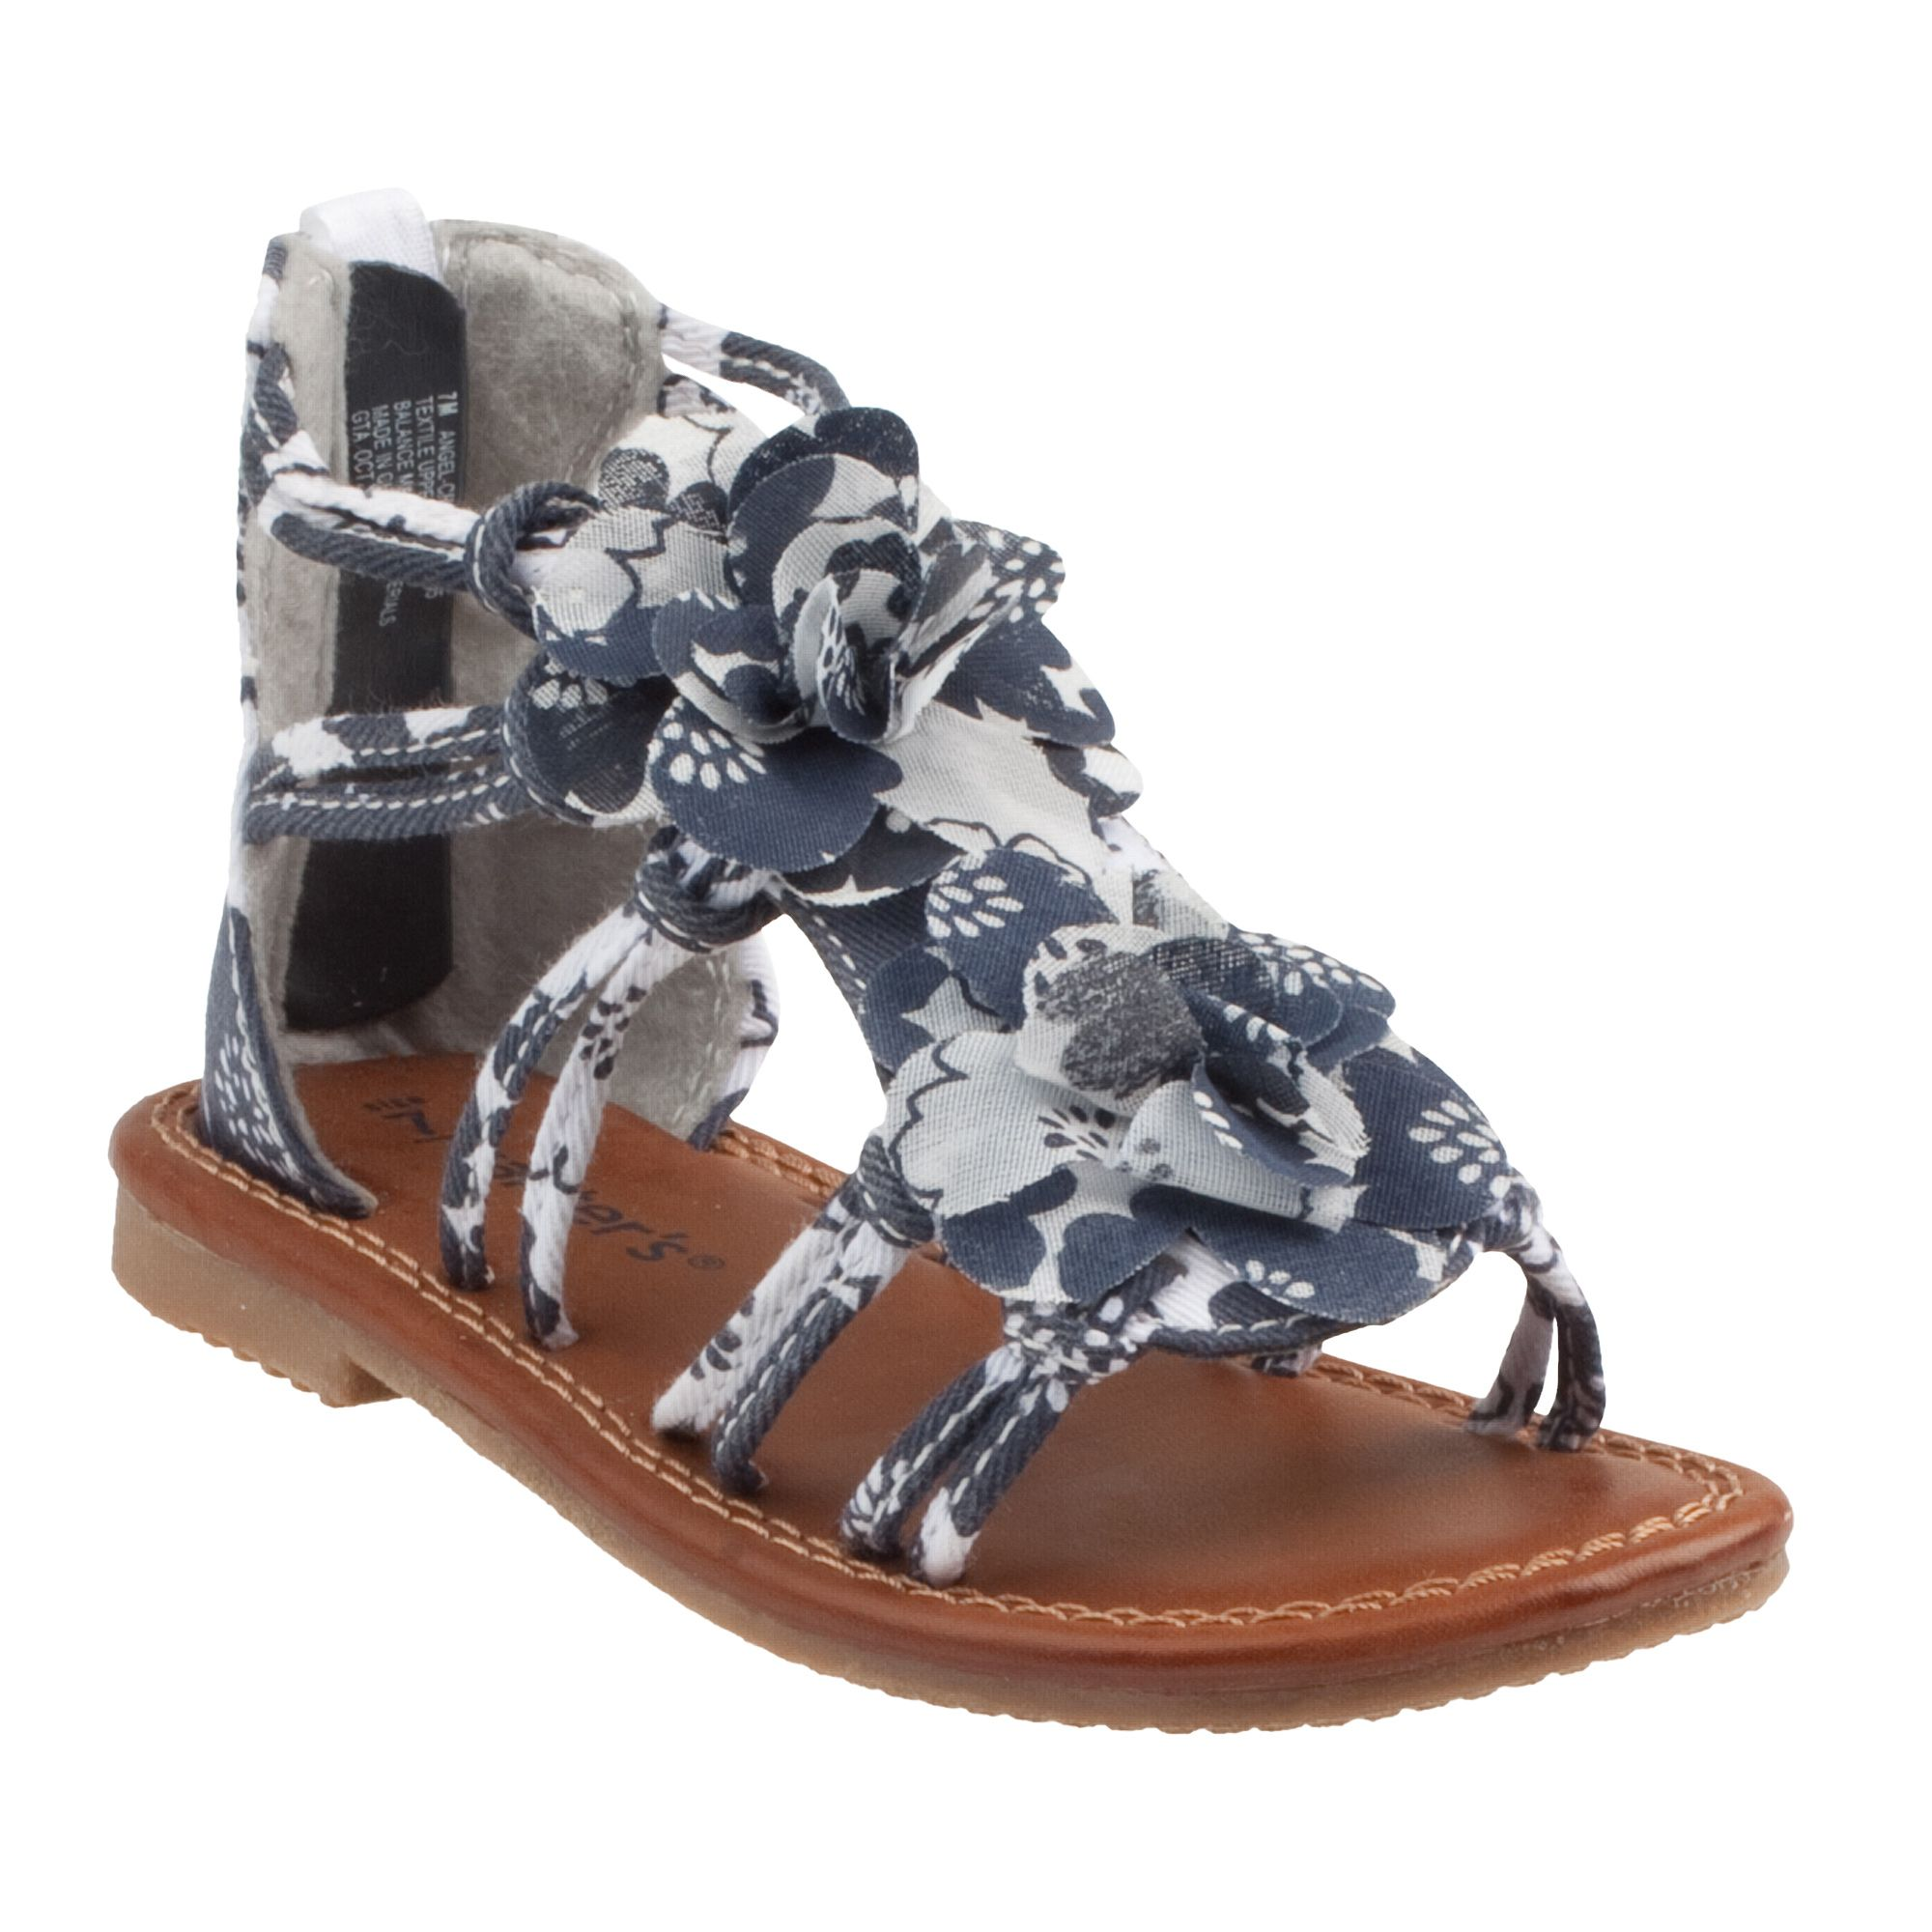 Floral Print Gladiator Sandals Baby Girl Shoes Stuff